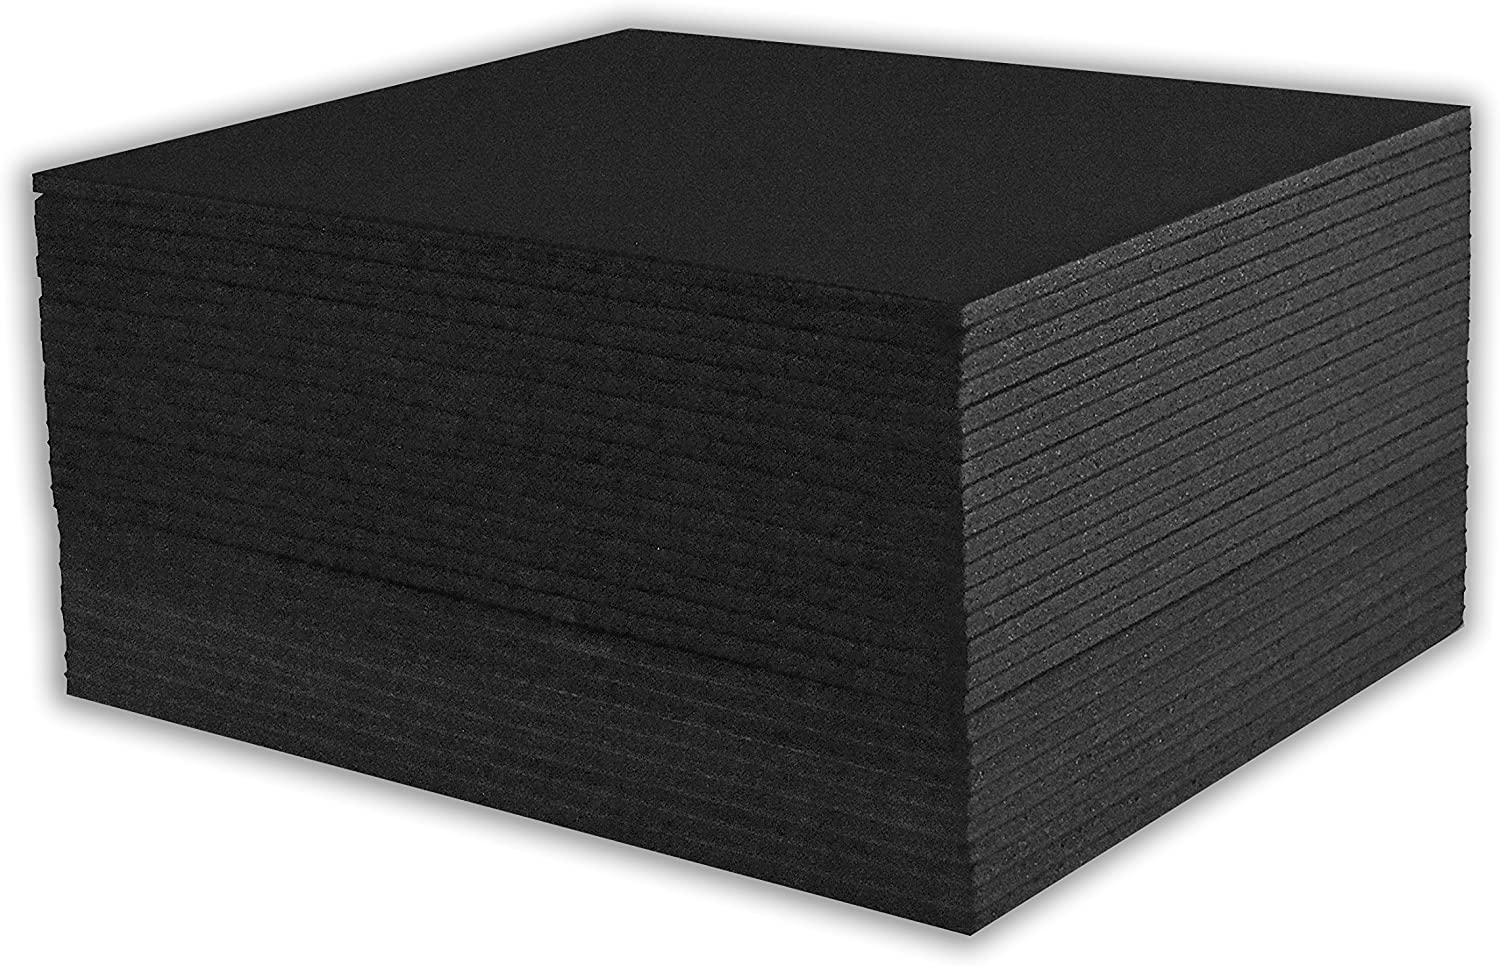 8x10 Black Foam Core Backing Boards Golden State Art 8x10, Black Pack of 25 3//16 Thick